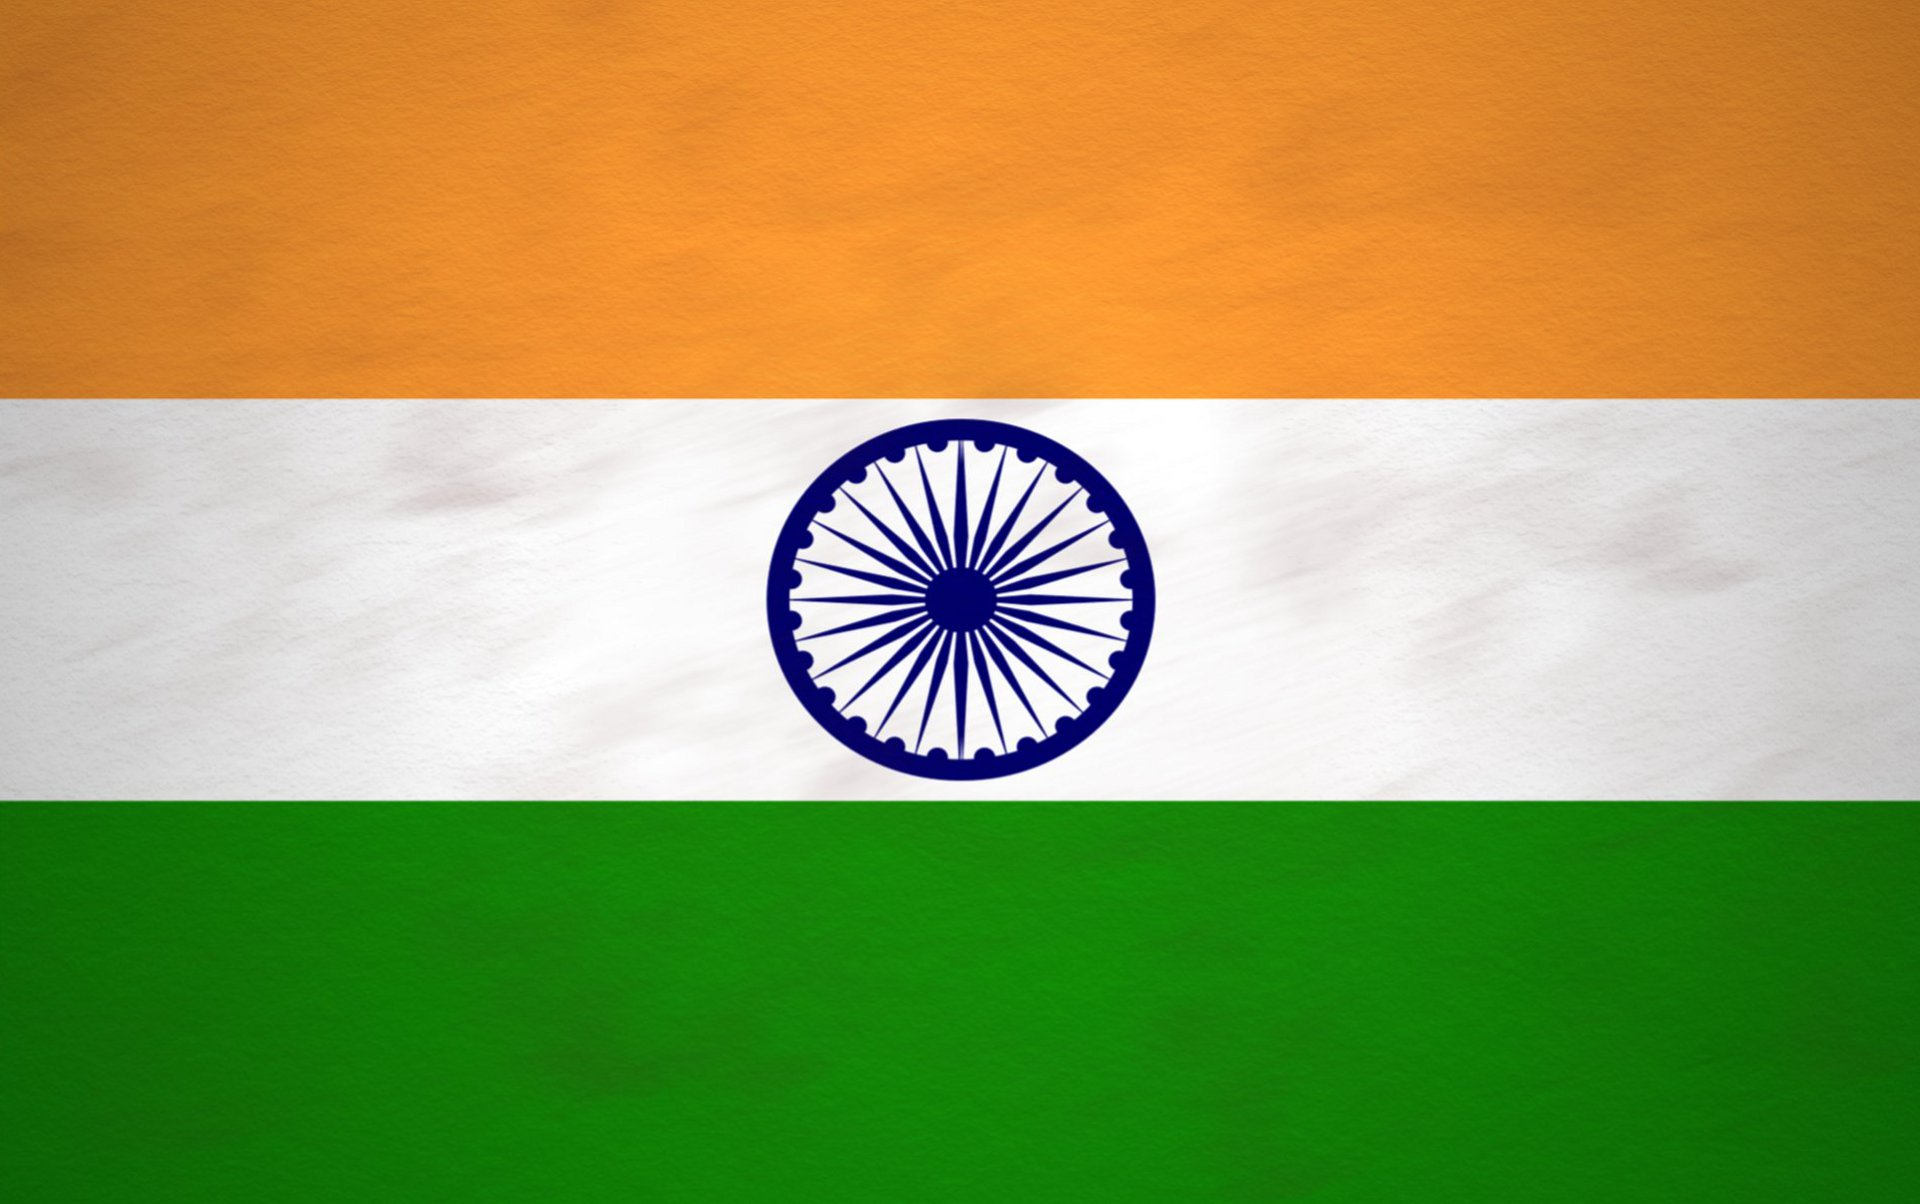 indian flag wallpapers amp hd images 2018 free download